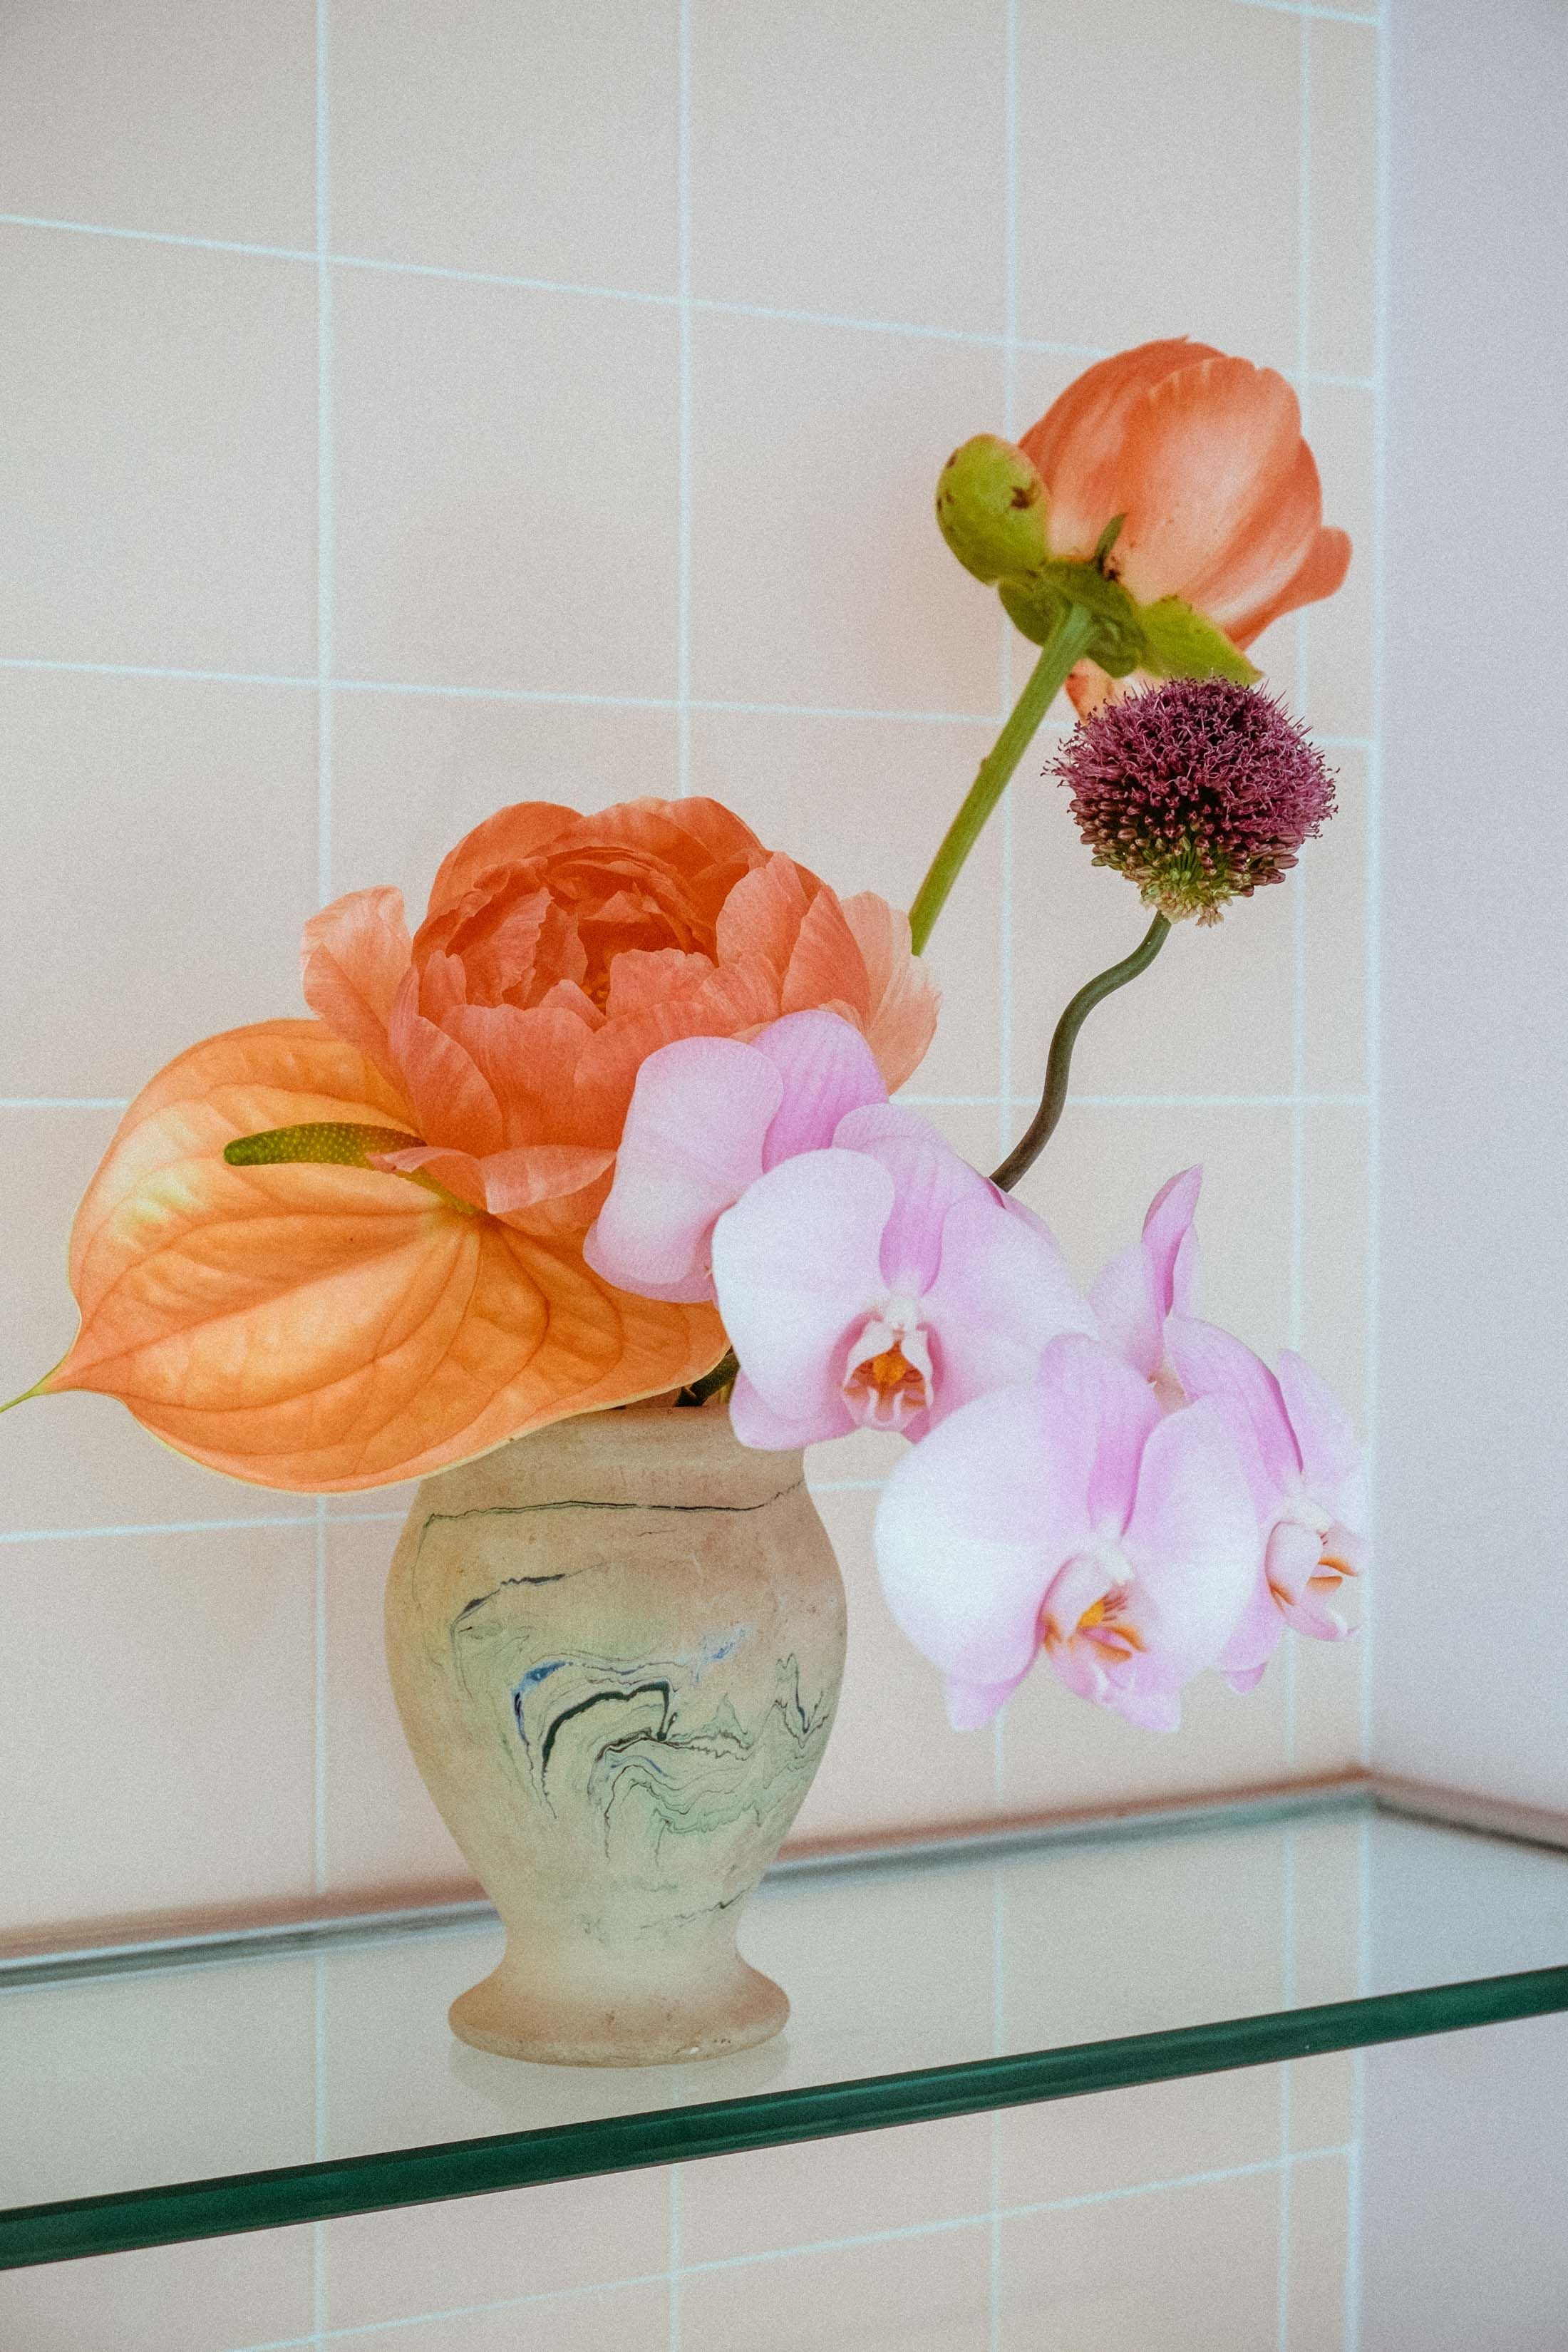 Flowers by Brittany Asch of Brrch Floral in the Glossier Showroom (1).jpeg